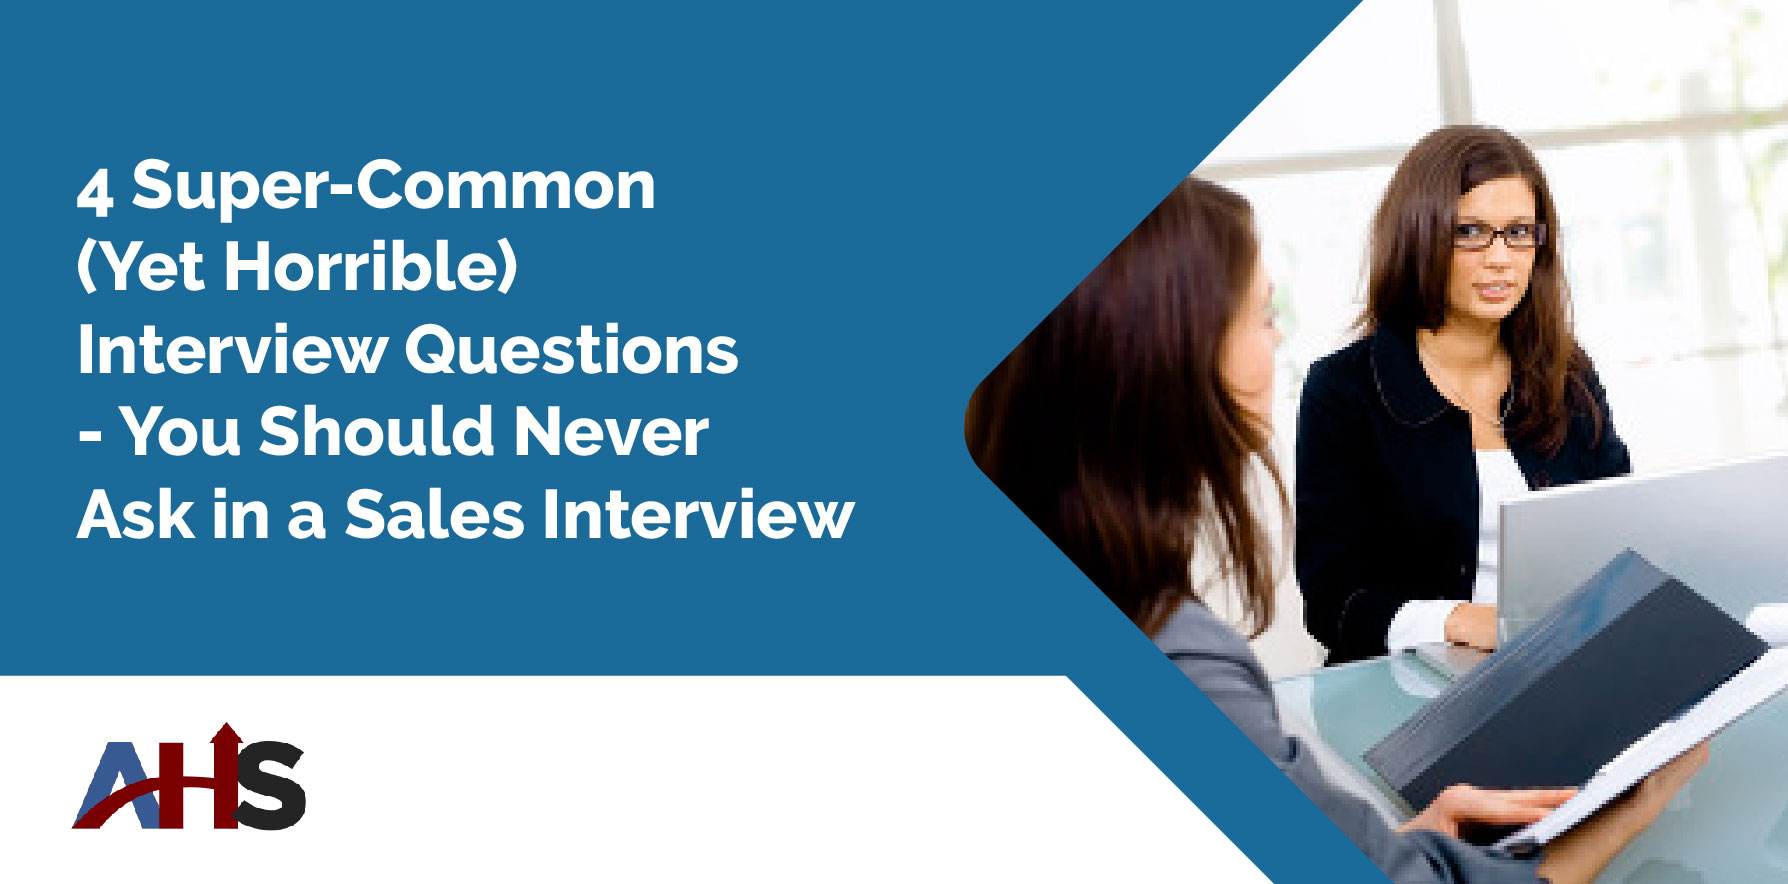 4 Super-Common (Yet Horrible) Interview Questions — You Should Never Ask in a Sales Interview